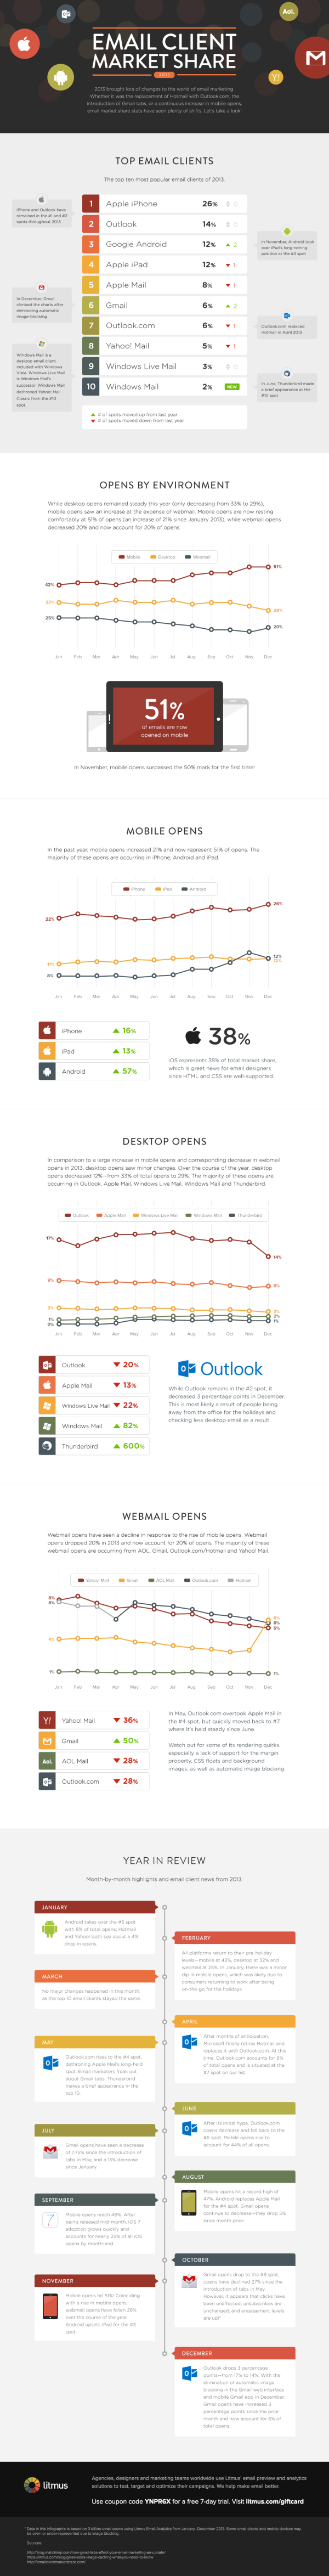 Email Client Market Share Infographic